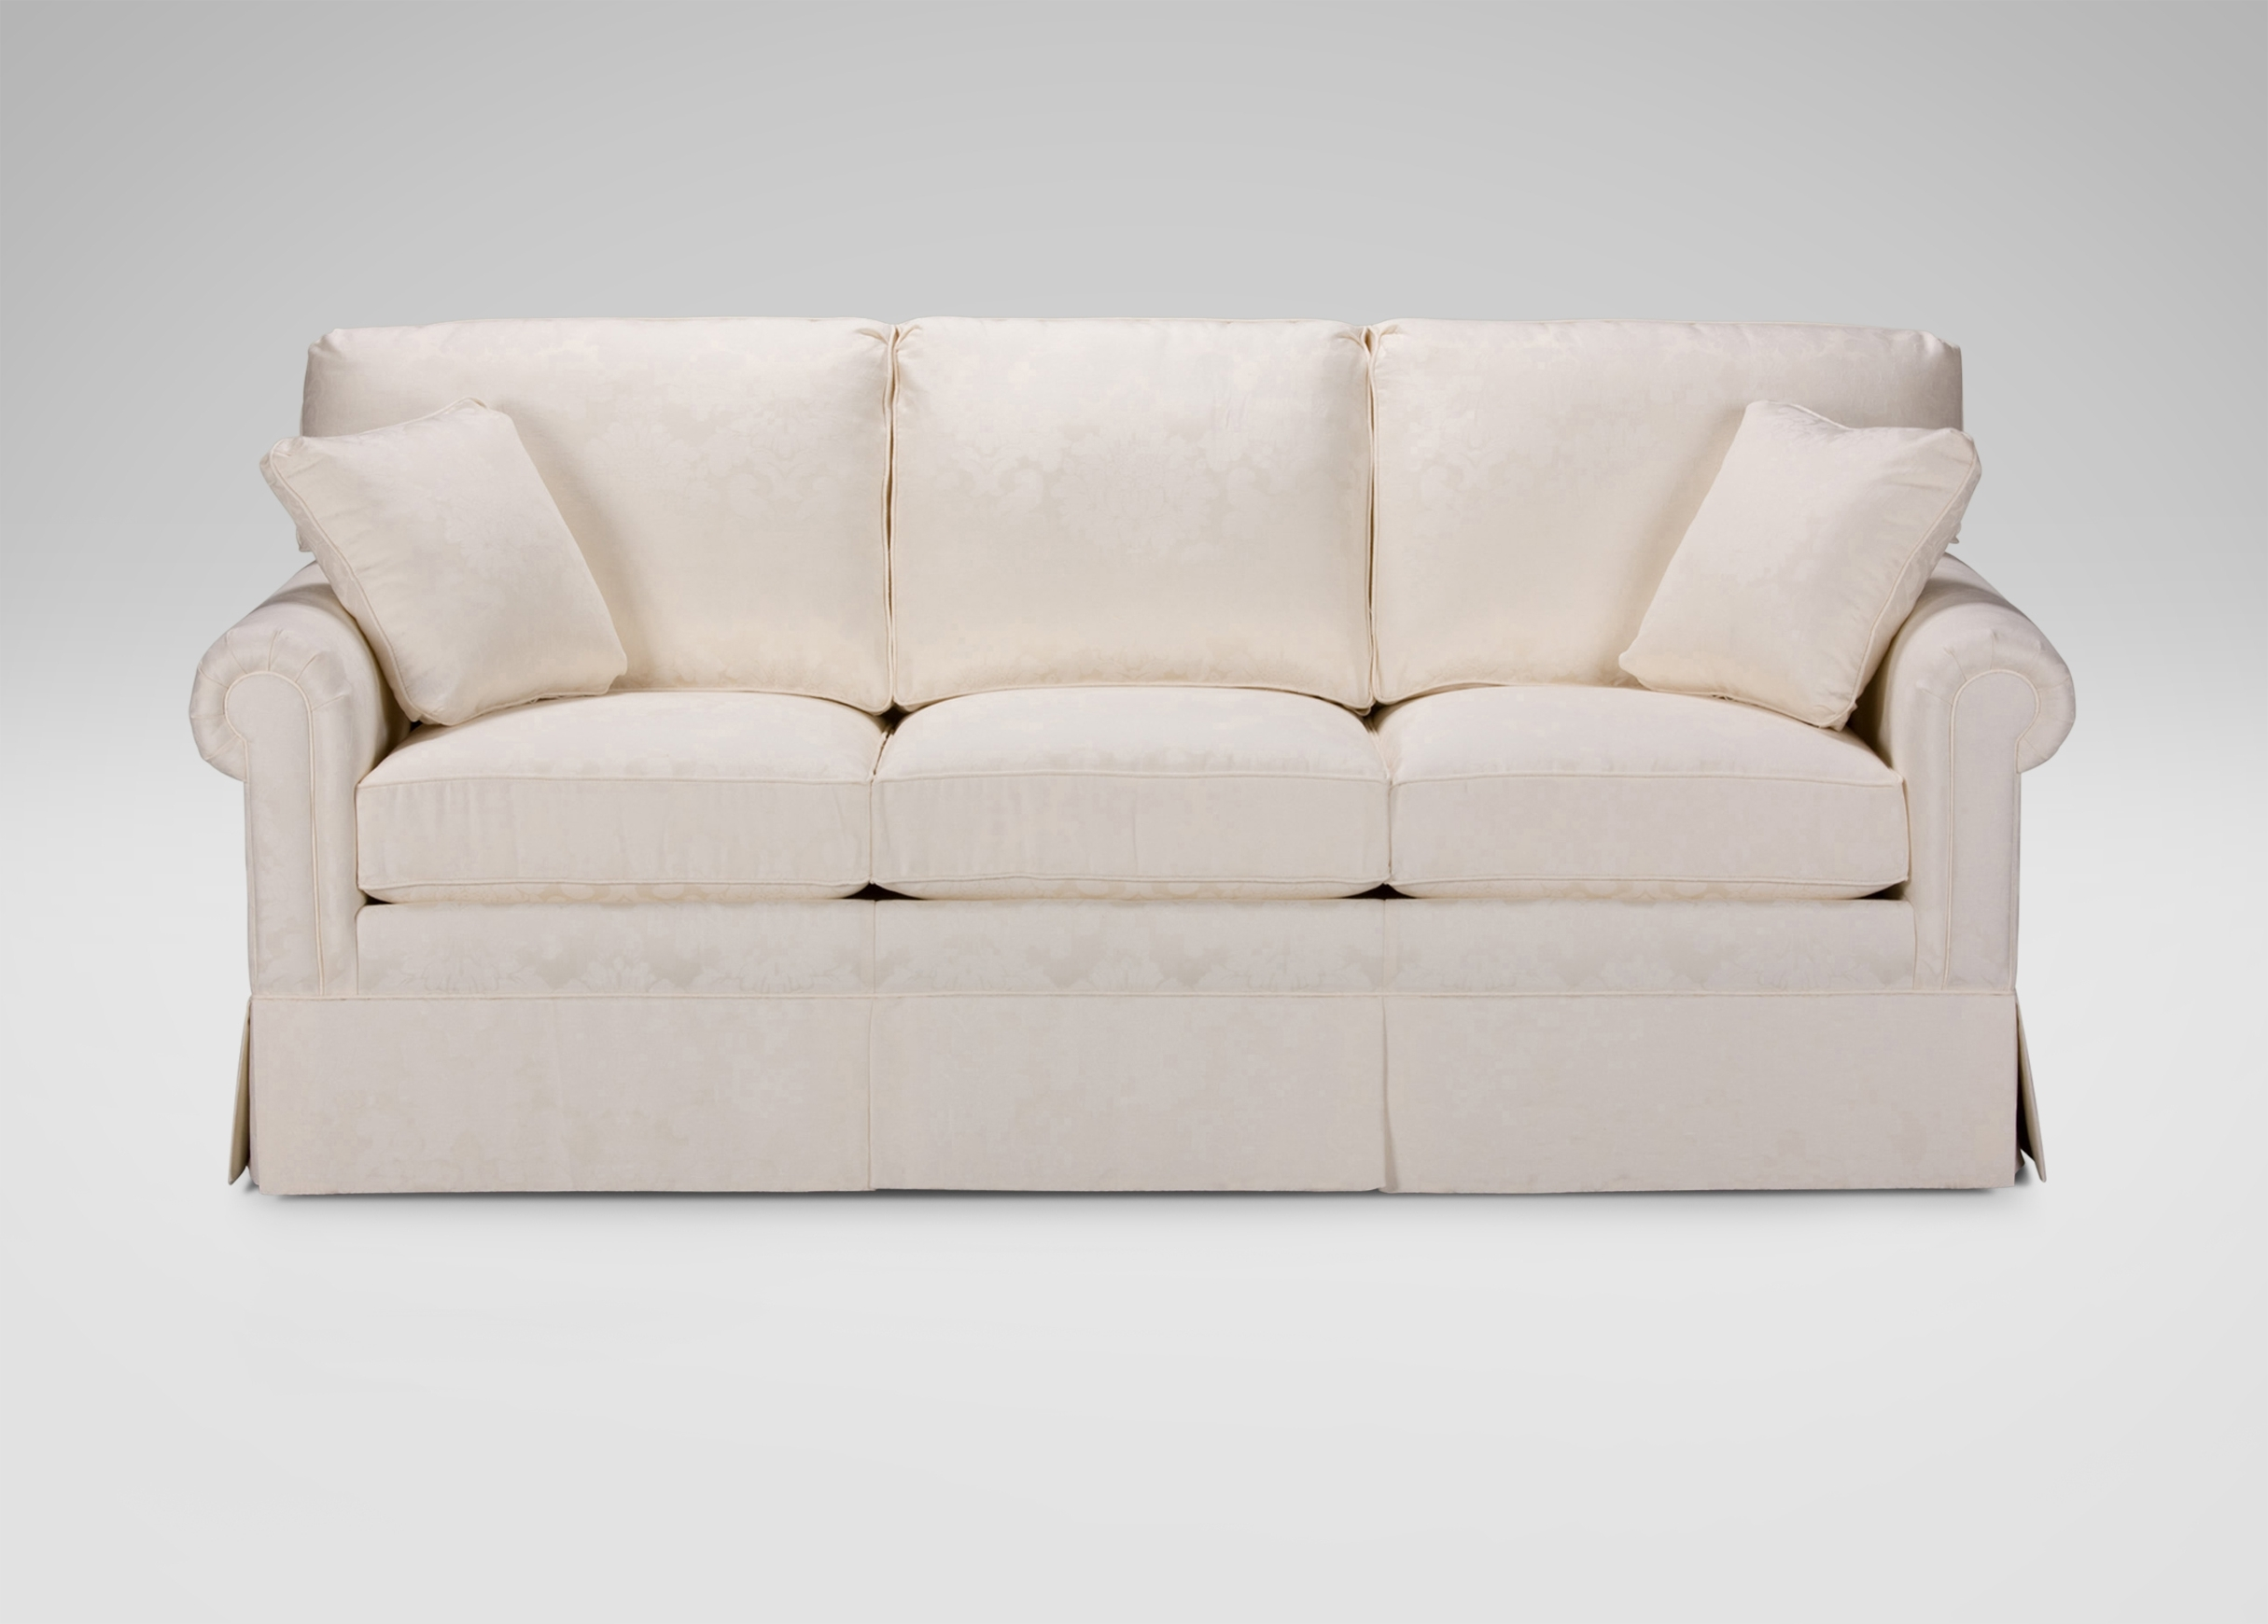 Sectional Sofas At Ethan Allen Inside Popular Paramount Panel Arm Sofa (View 13 of 20)